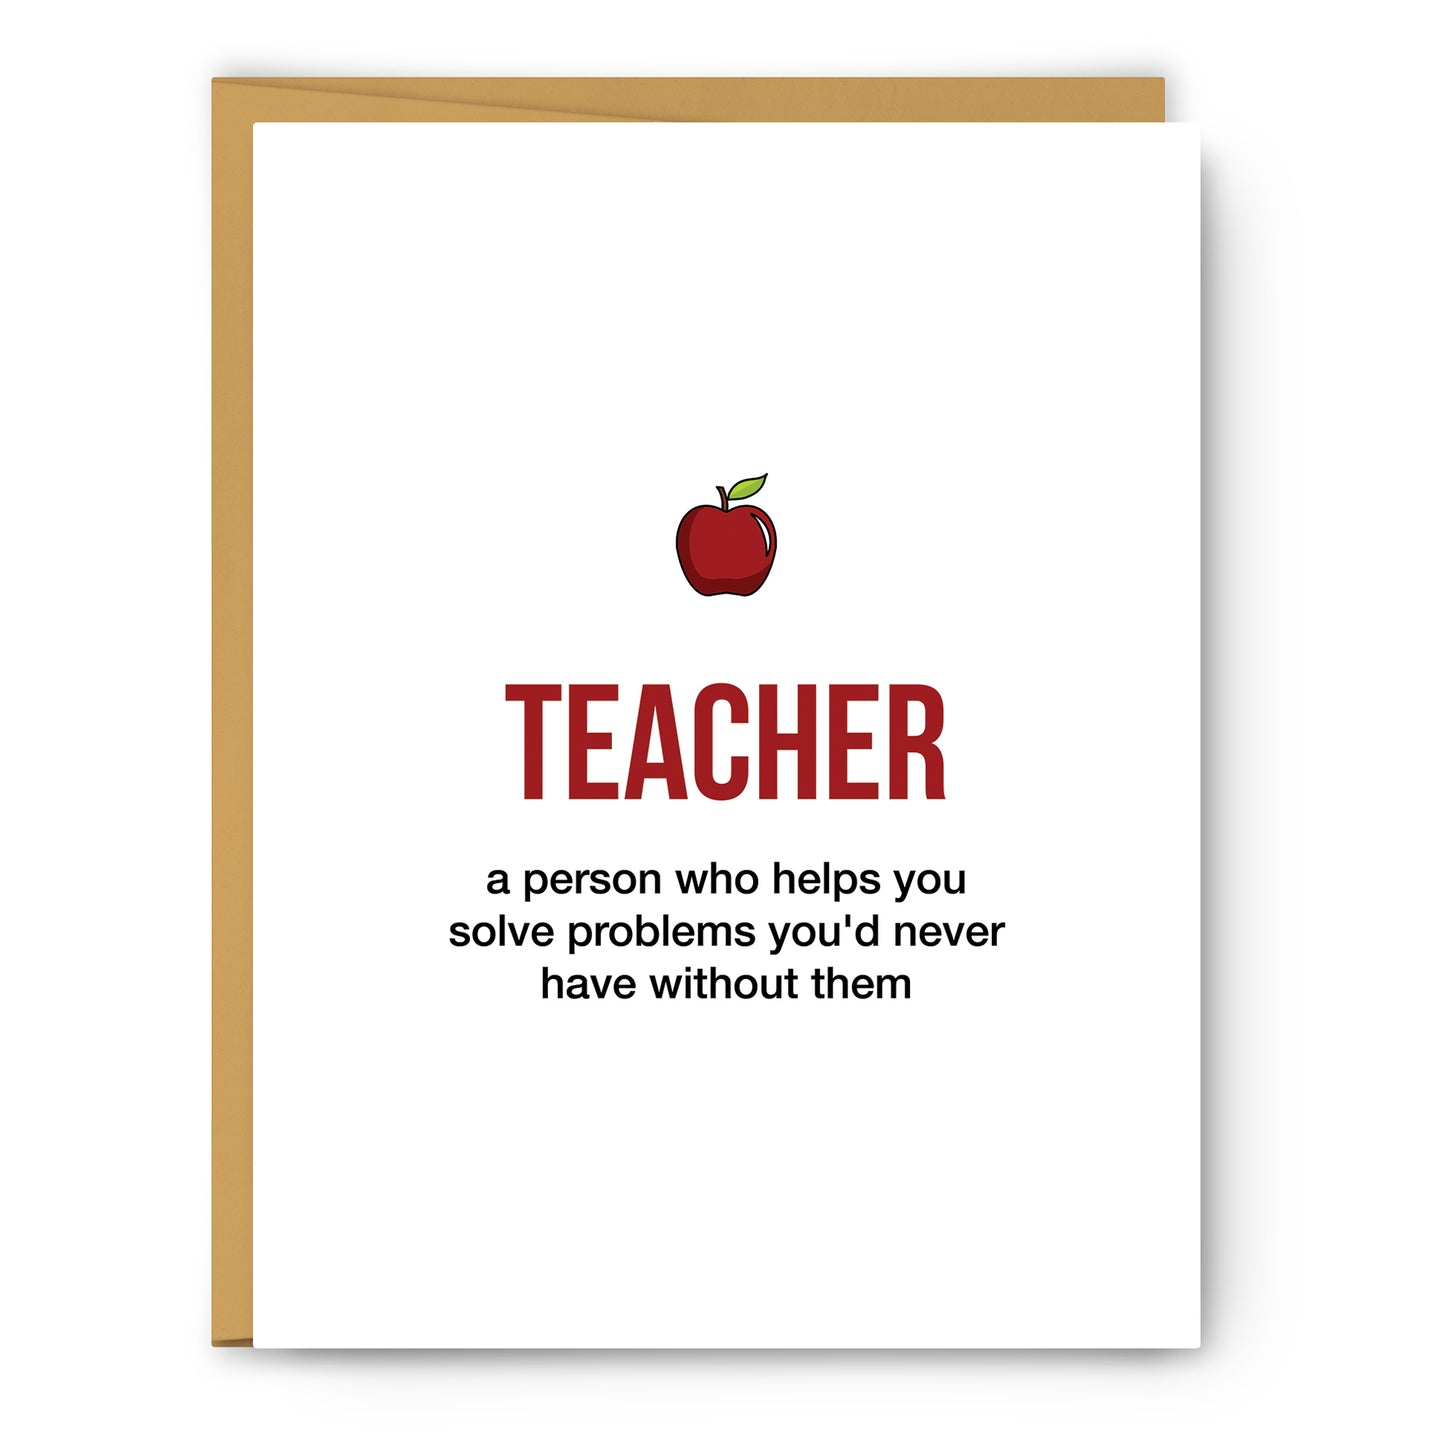 Teacher Definition Illustration - Unframed Art Print Poster Or Greeting Card